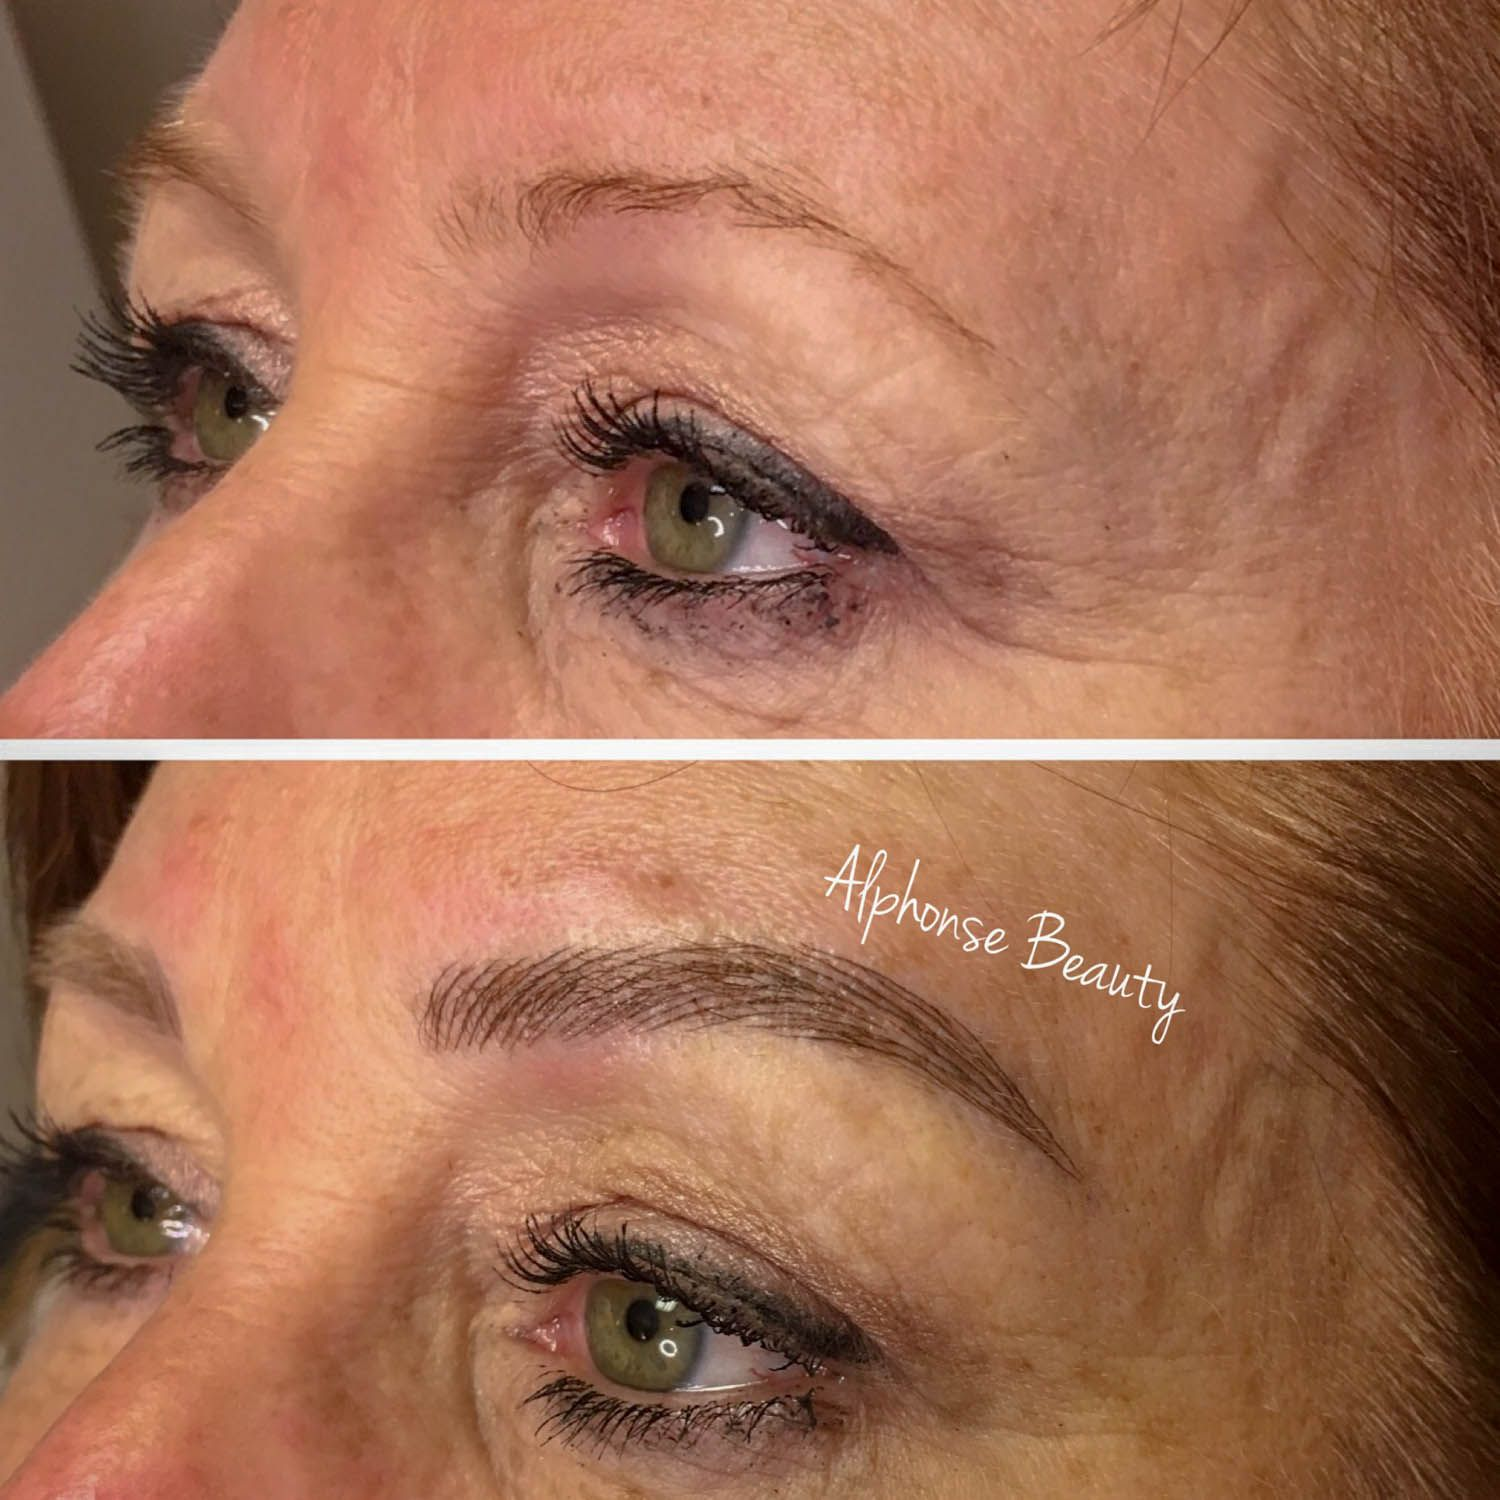 Eyebrow reconstruction obtaining natural looking results from Microblading